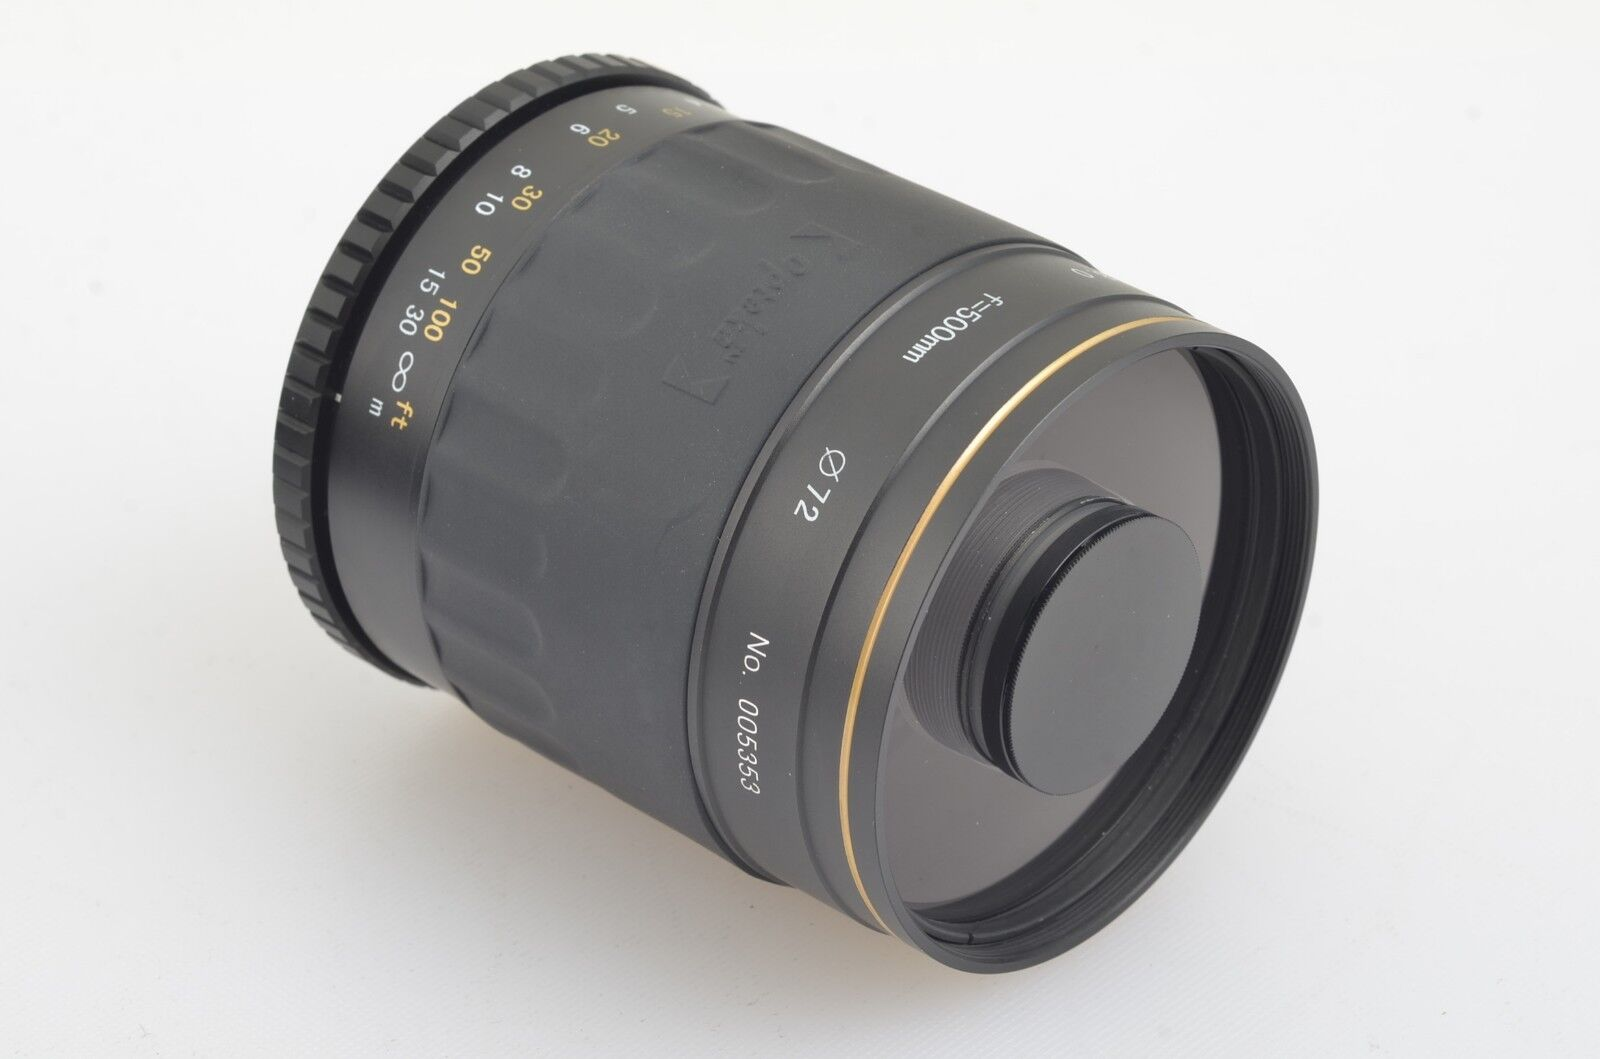 MINT- OPTEKA 500mm F8 MC MIRROR LENS W/2X TELECONVERTER, CAPS UNIVERSAL T-MOUNT - $79.95